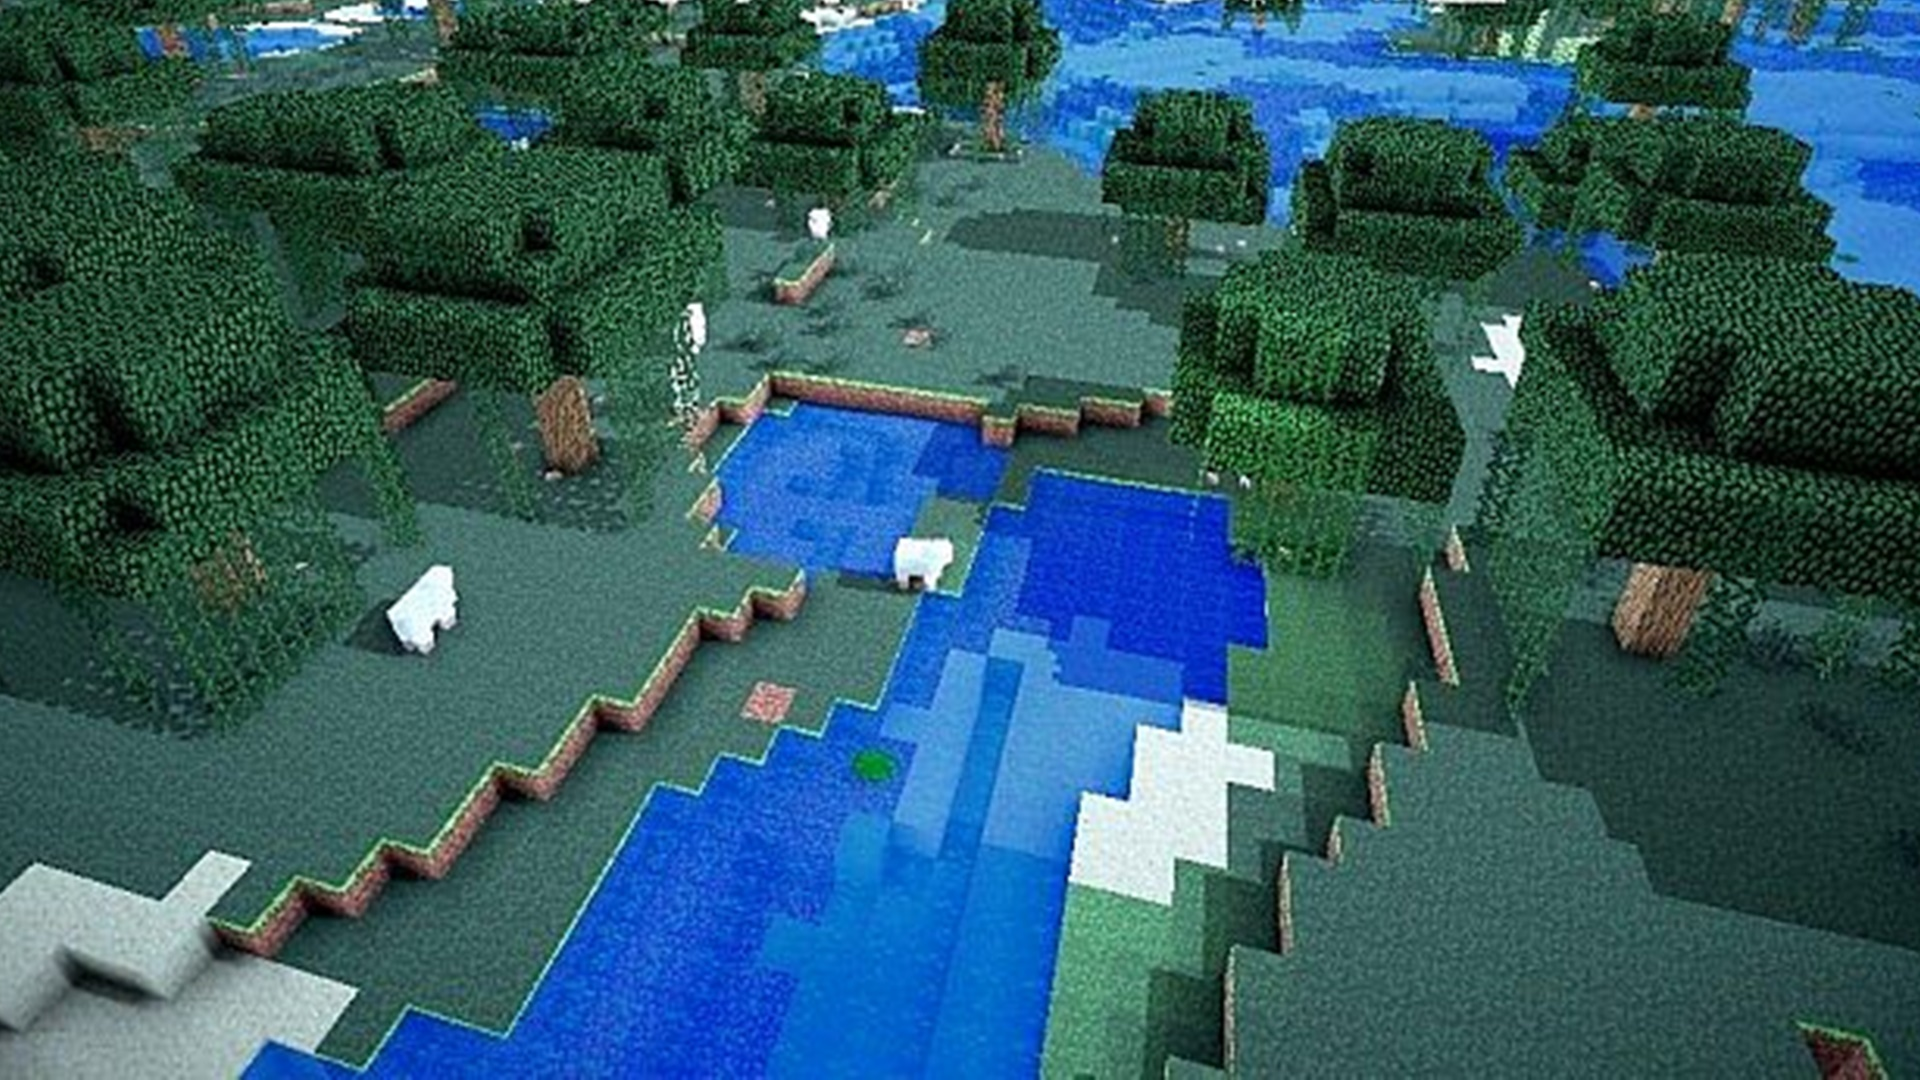 Minecraft shaders: the best Minecraft graphics mods | PCGamesN